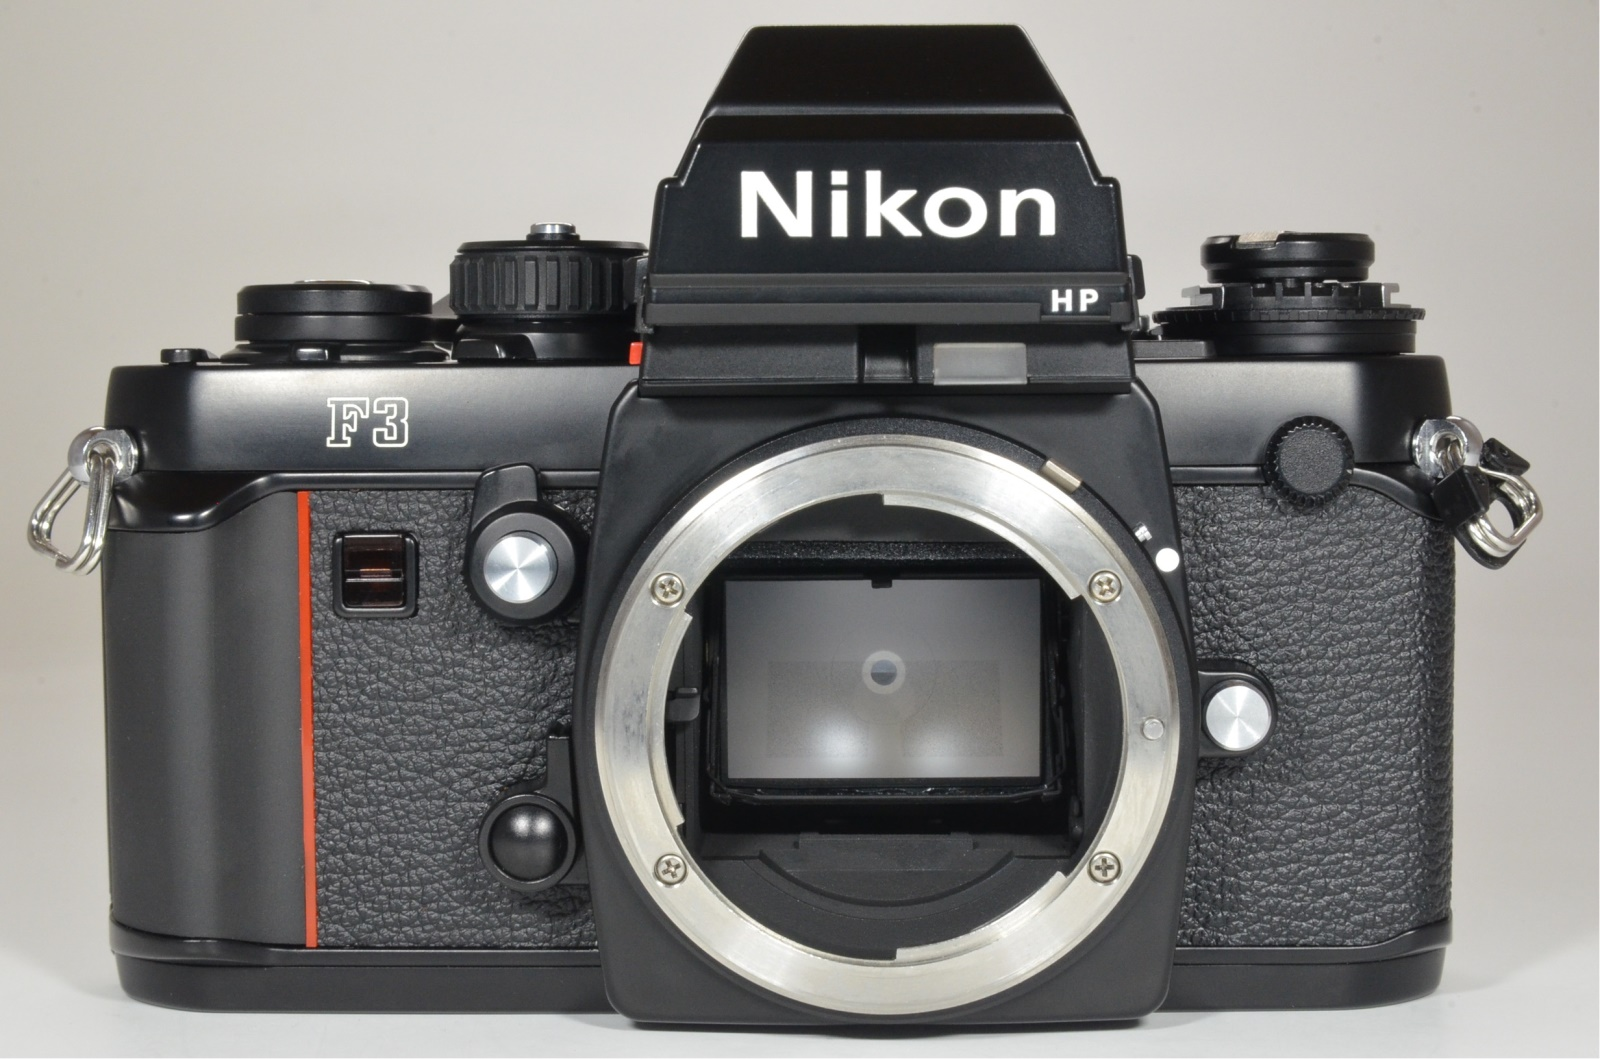 nikon f3 hp w/ nikkor 50mm f1.4 and 35-105mm f3.5-4.5 shooting tested